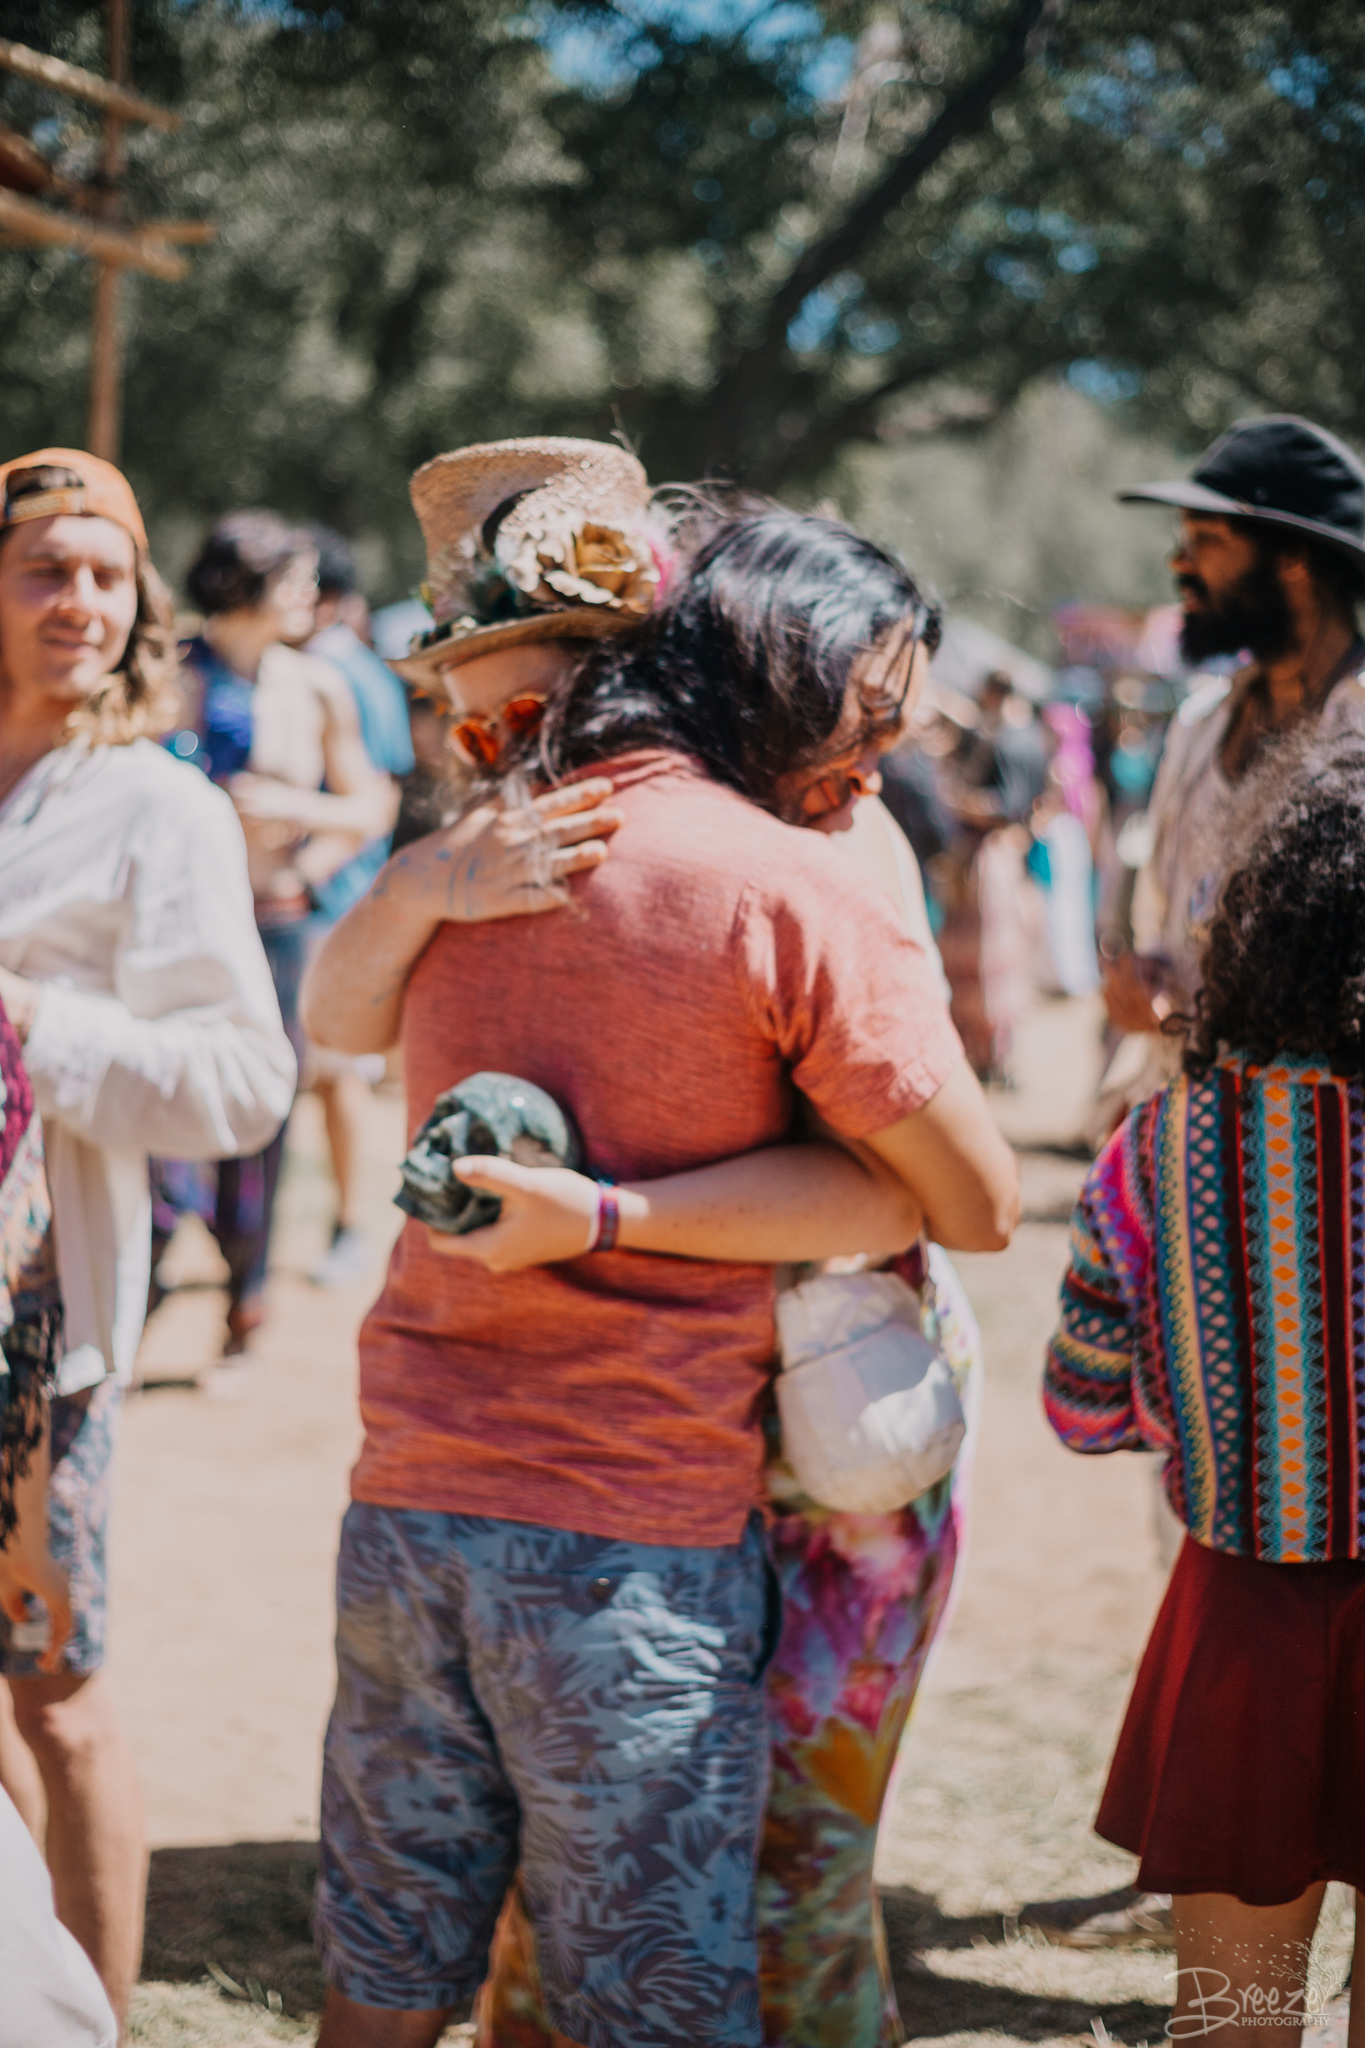 Lucidity.Festival.2019.Brie'Ana Breeze Photography and Media-6403.jpg